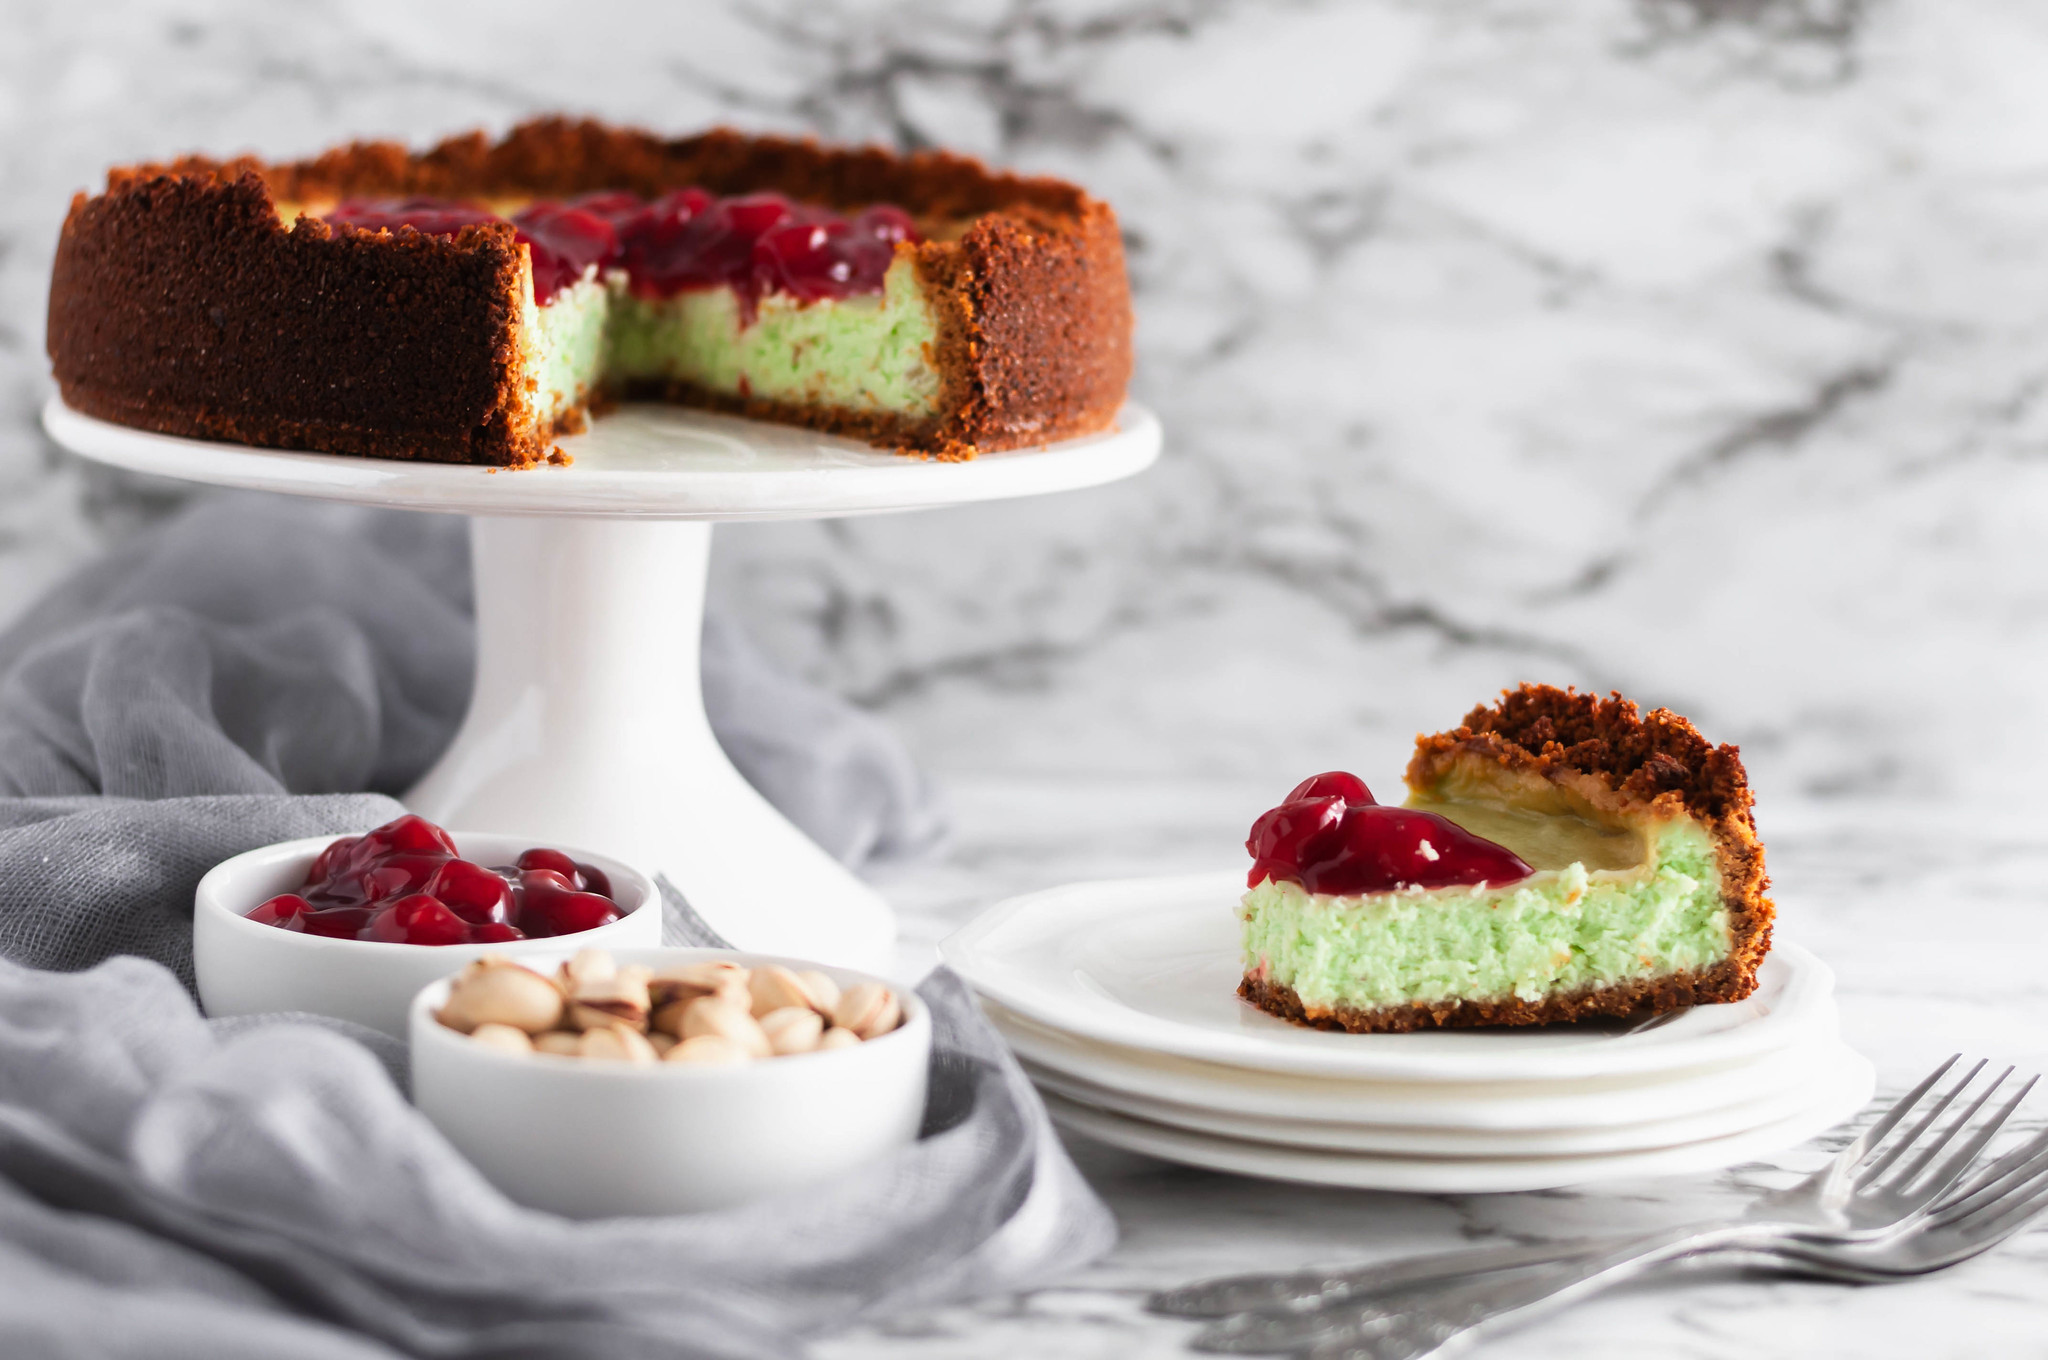 This PIstachio Cheesecake is a delightful holiday dessert. Thick, creamy cheesecake studded with pistachio flavor throughout the filling and crust. Top with cherries to make it extra festive.